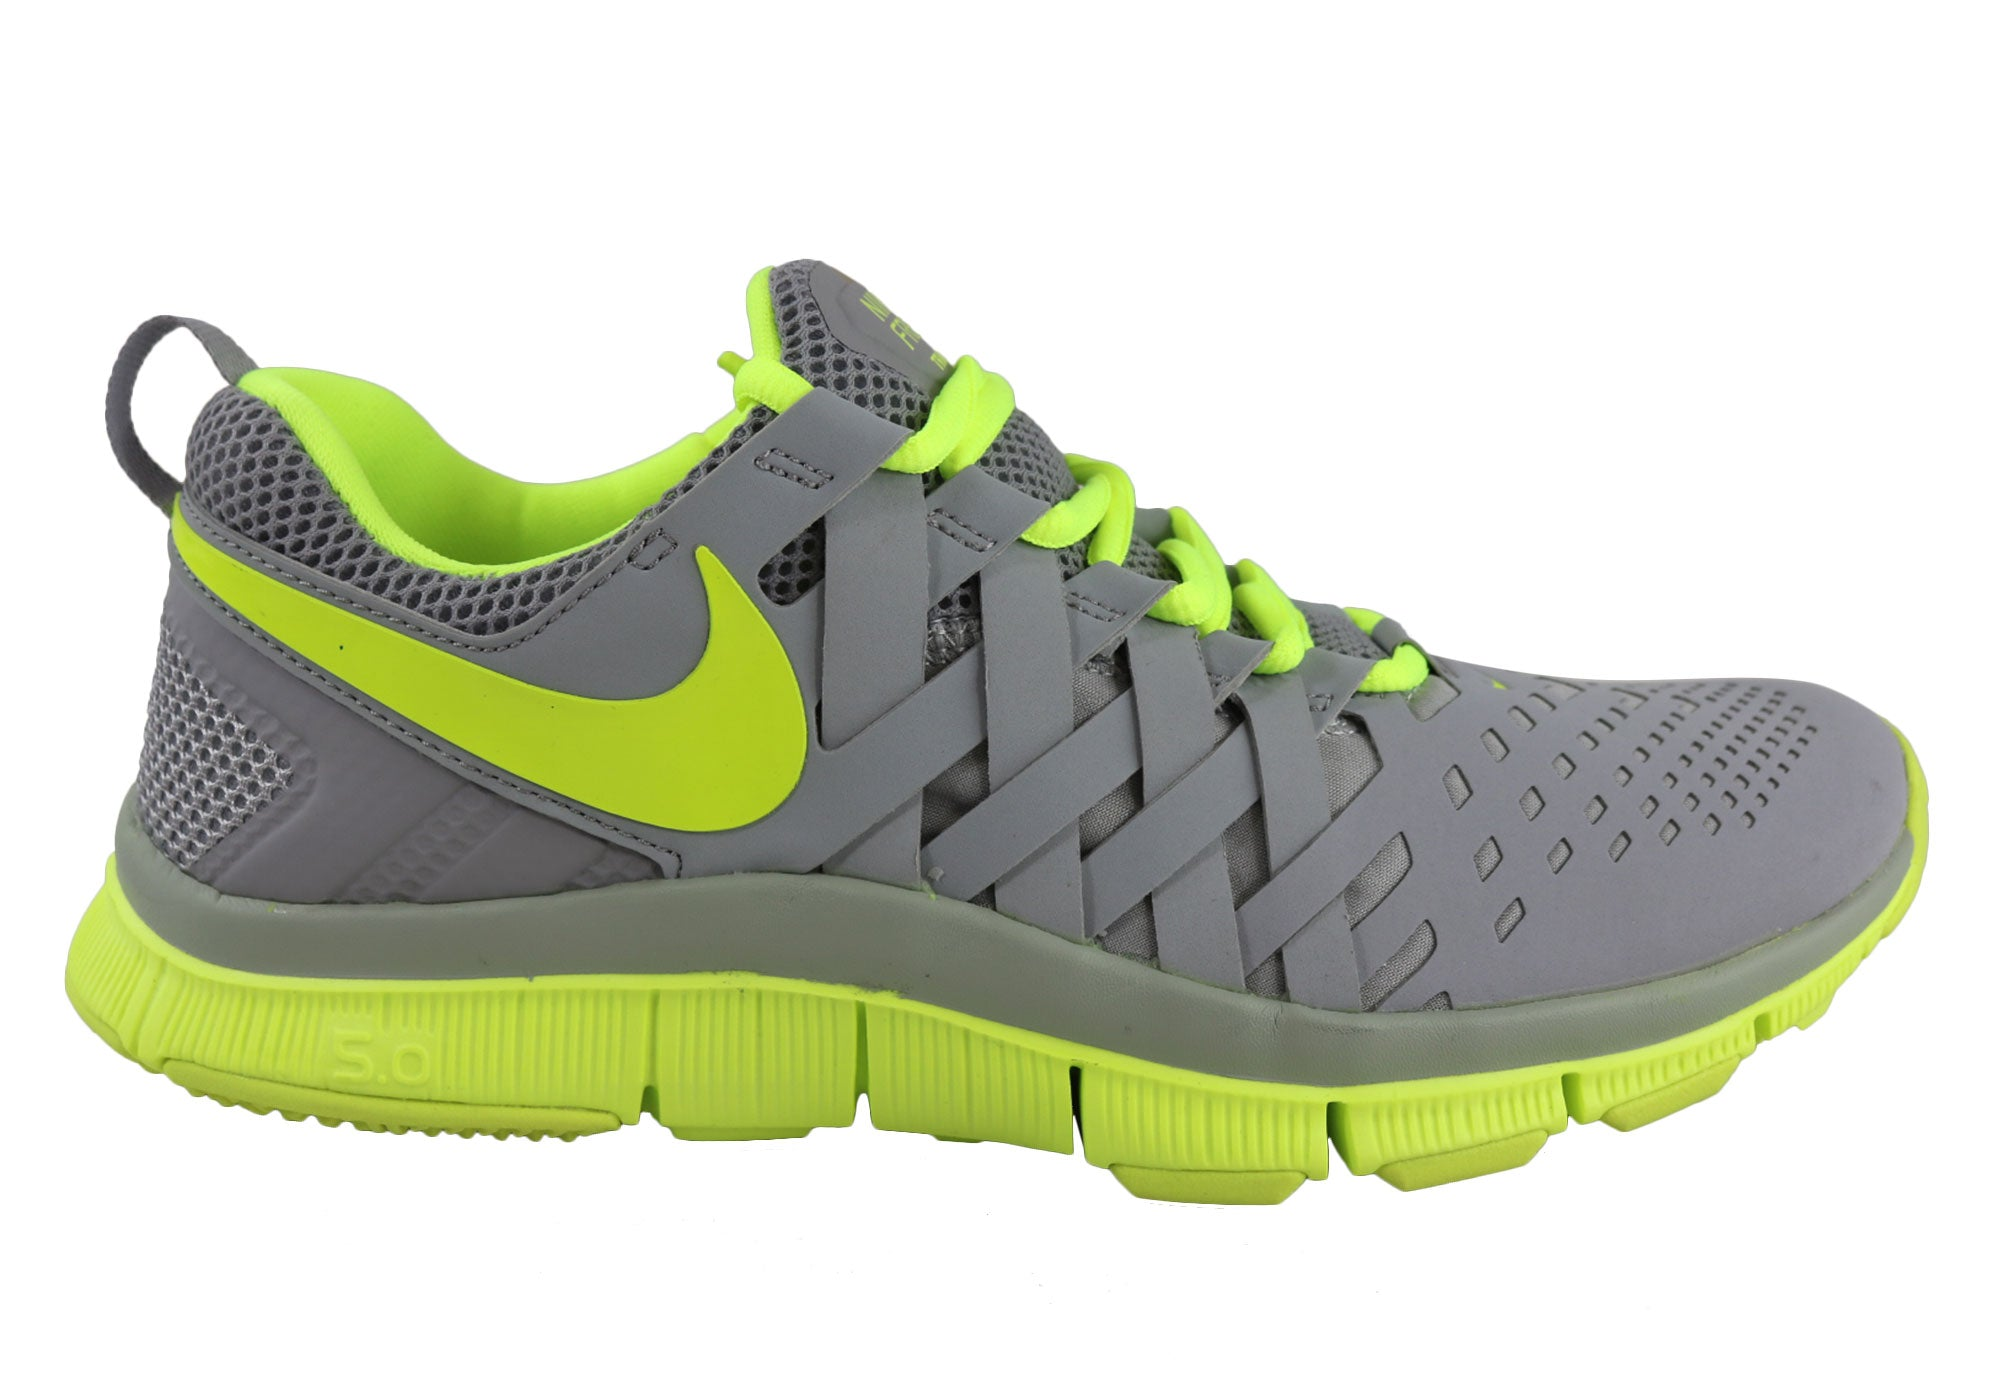 low priced 71372 9e248 Nike Free Trainer 5.0 Mens Running Sport Shoes | Brand House Direct